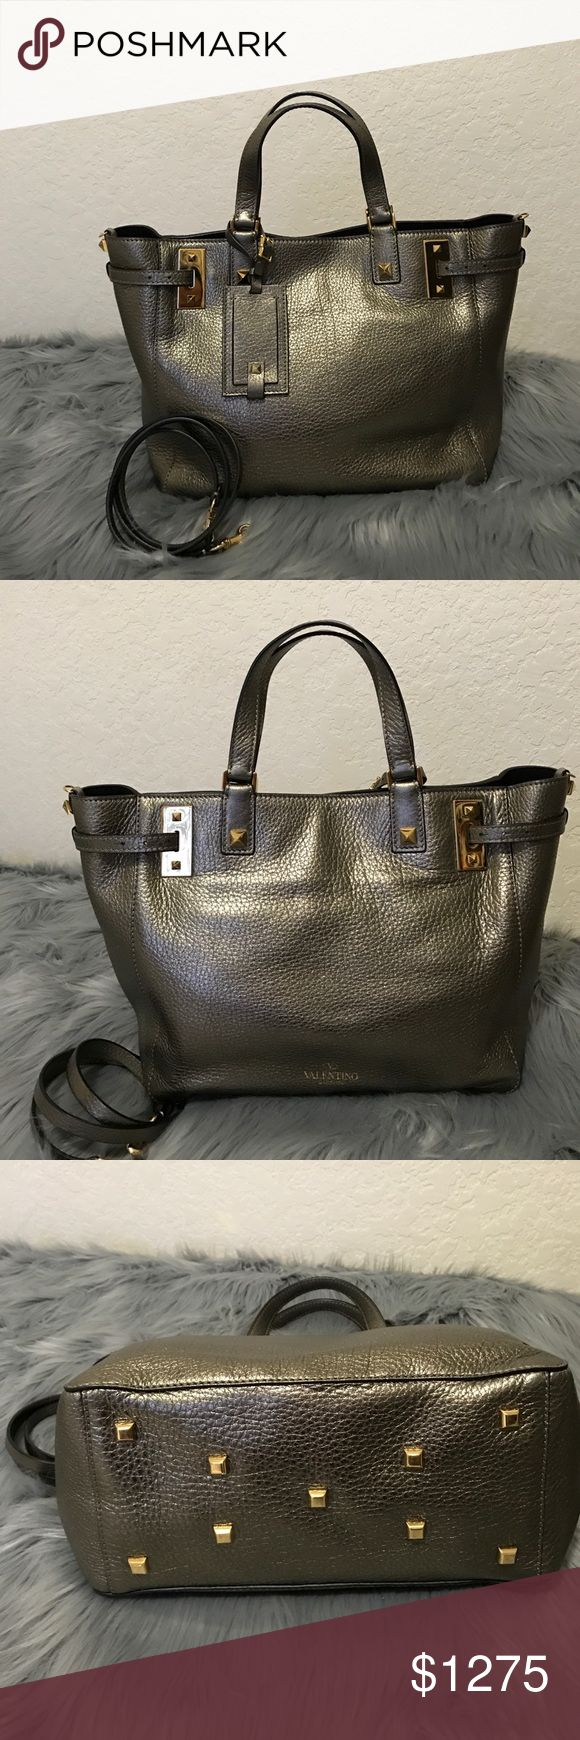 Valentino My Rockstud Soft leather tote Bag 💯 Authentic, gently used bag! Exterior is in great condition! Some light scratches on the gold hardware and is mostly on the bottom studs. Interior is clean, only few dusts. Still has the  protective sticker on the inside gold plates. Color:Bronze, length-17, height-10, width-6.5. Can be used hand held or worn over the shoulder or cross body. This sale is only for the bag and crossbody strap. Please let me know if you have any questions! Valentino…